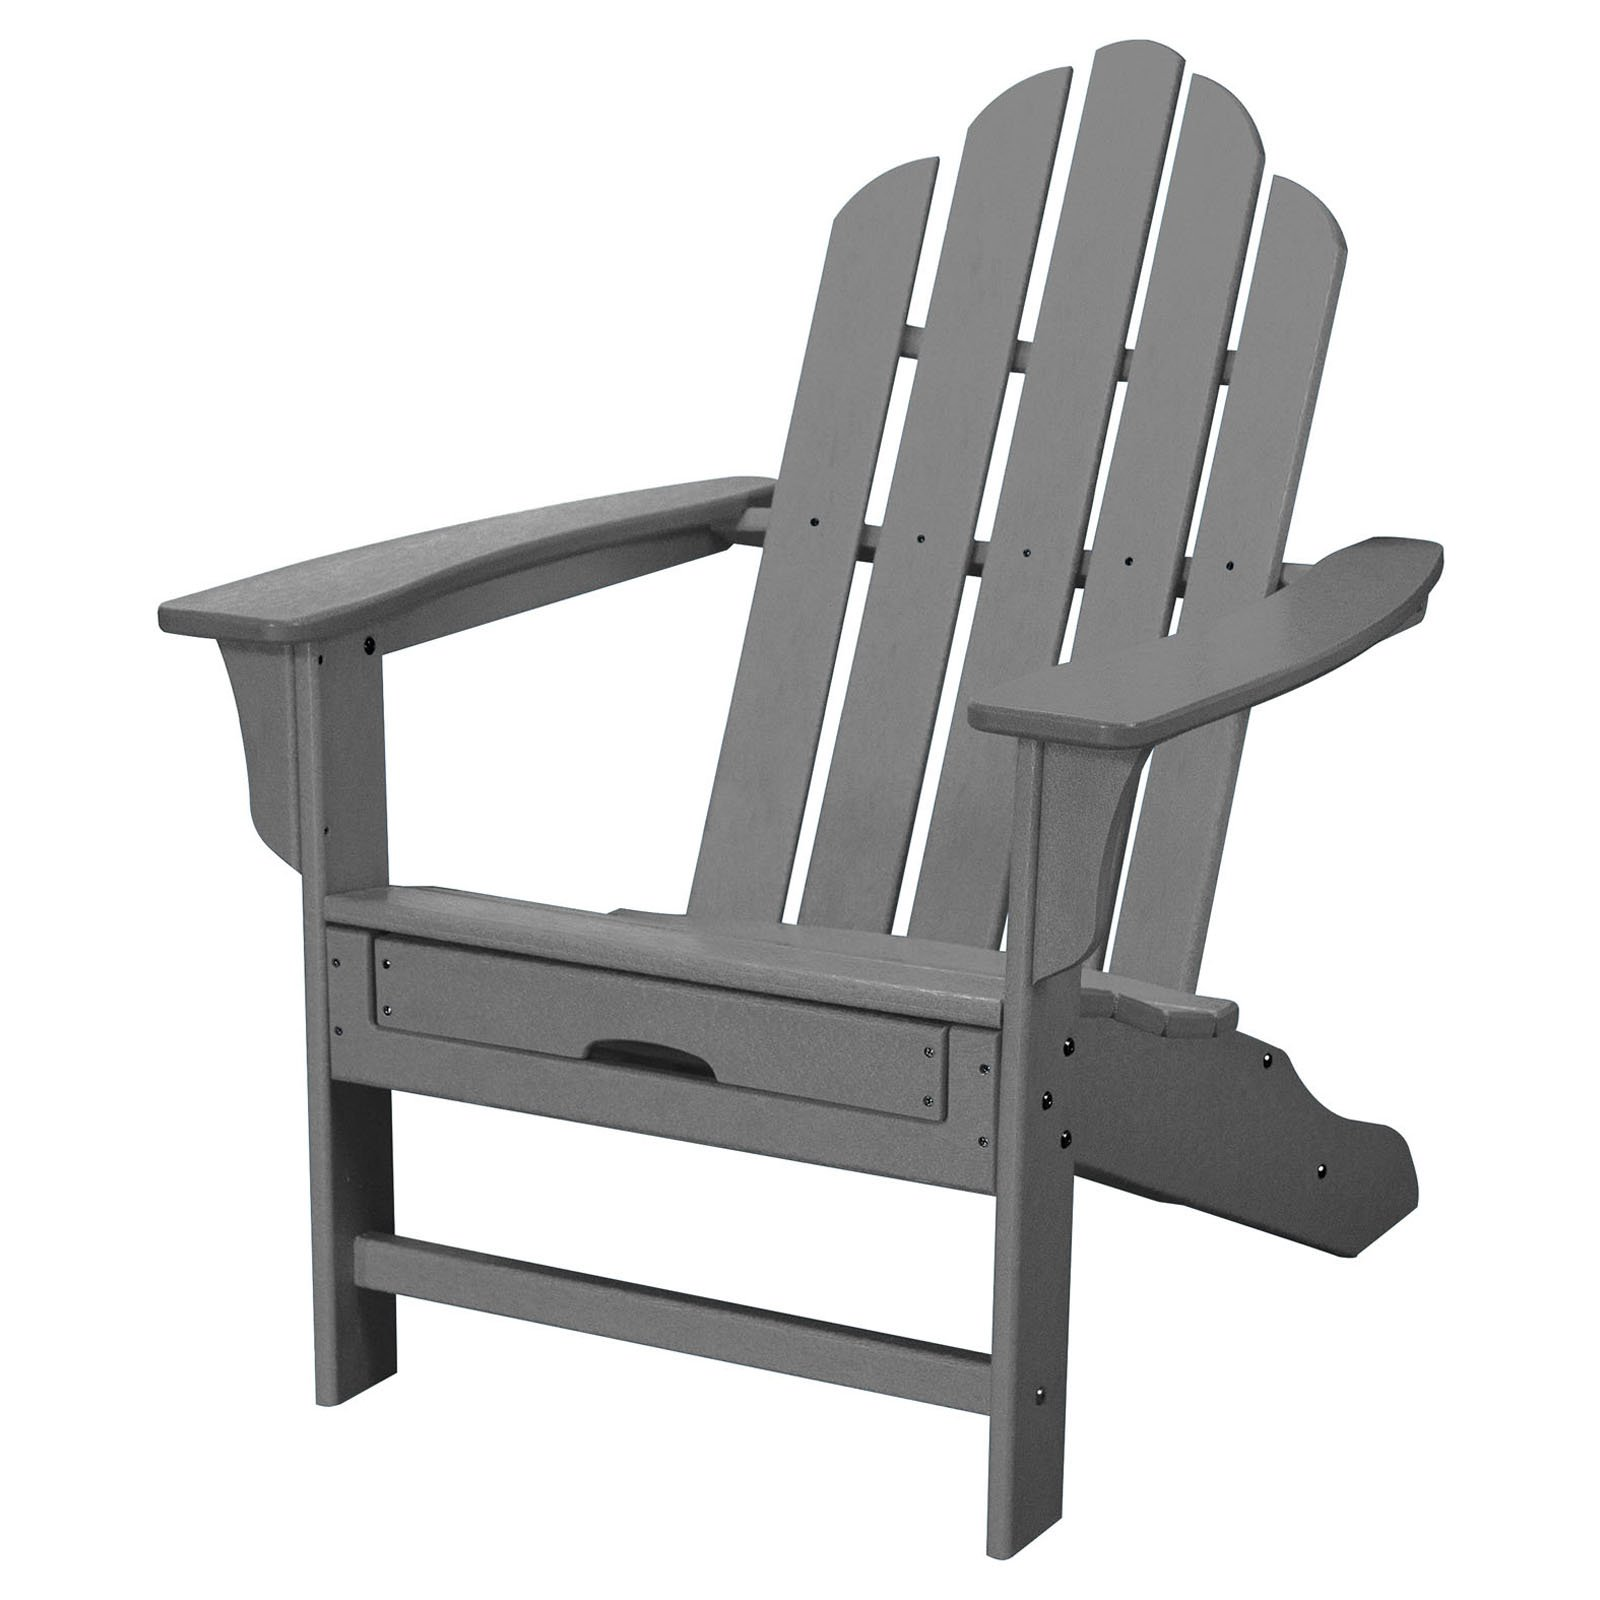 Hanover Outdoor All-Weather Contoured Adirondack Chair with Hideaway Ottoman by Adirondack Furniture